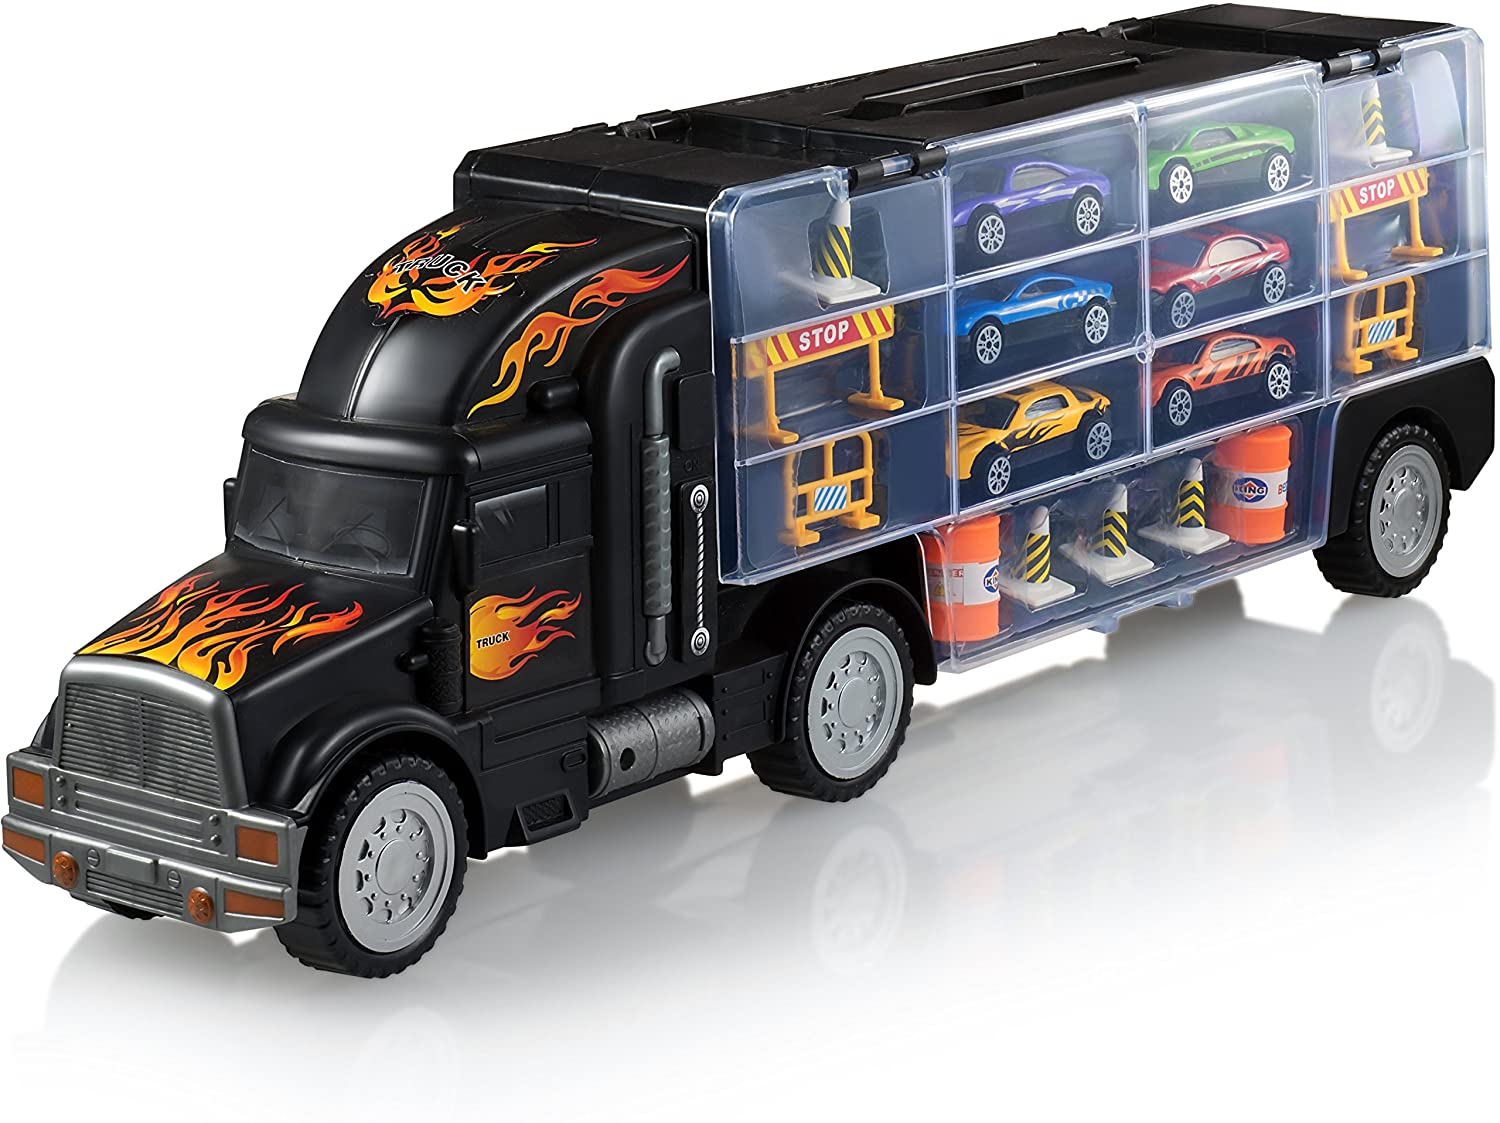 Play22 Toy Truck Transport Car Carrier - Toy Truck Includes 6 Toy Cars & Accessories